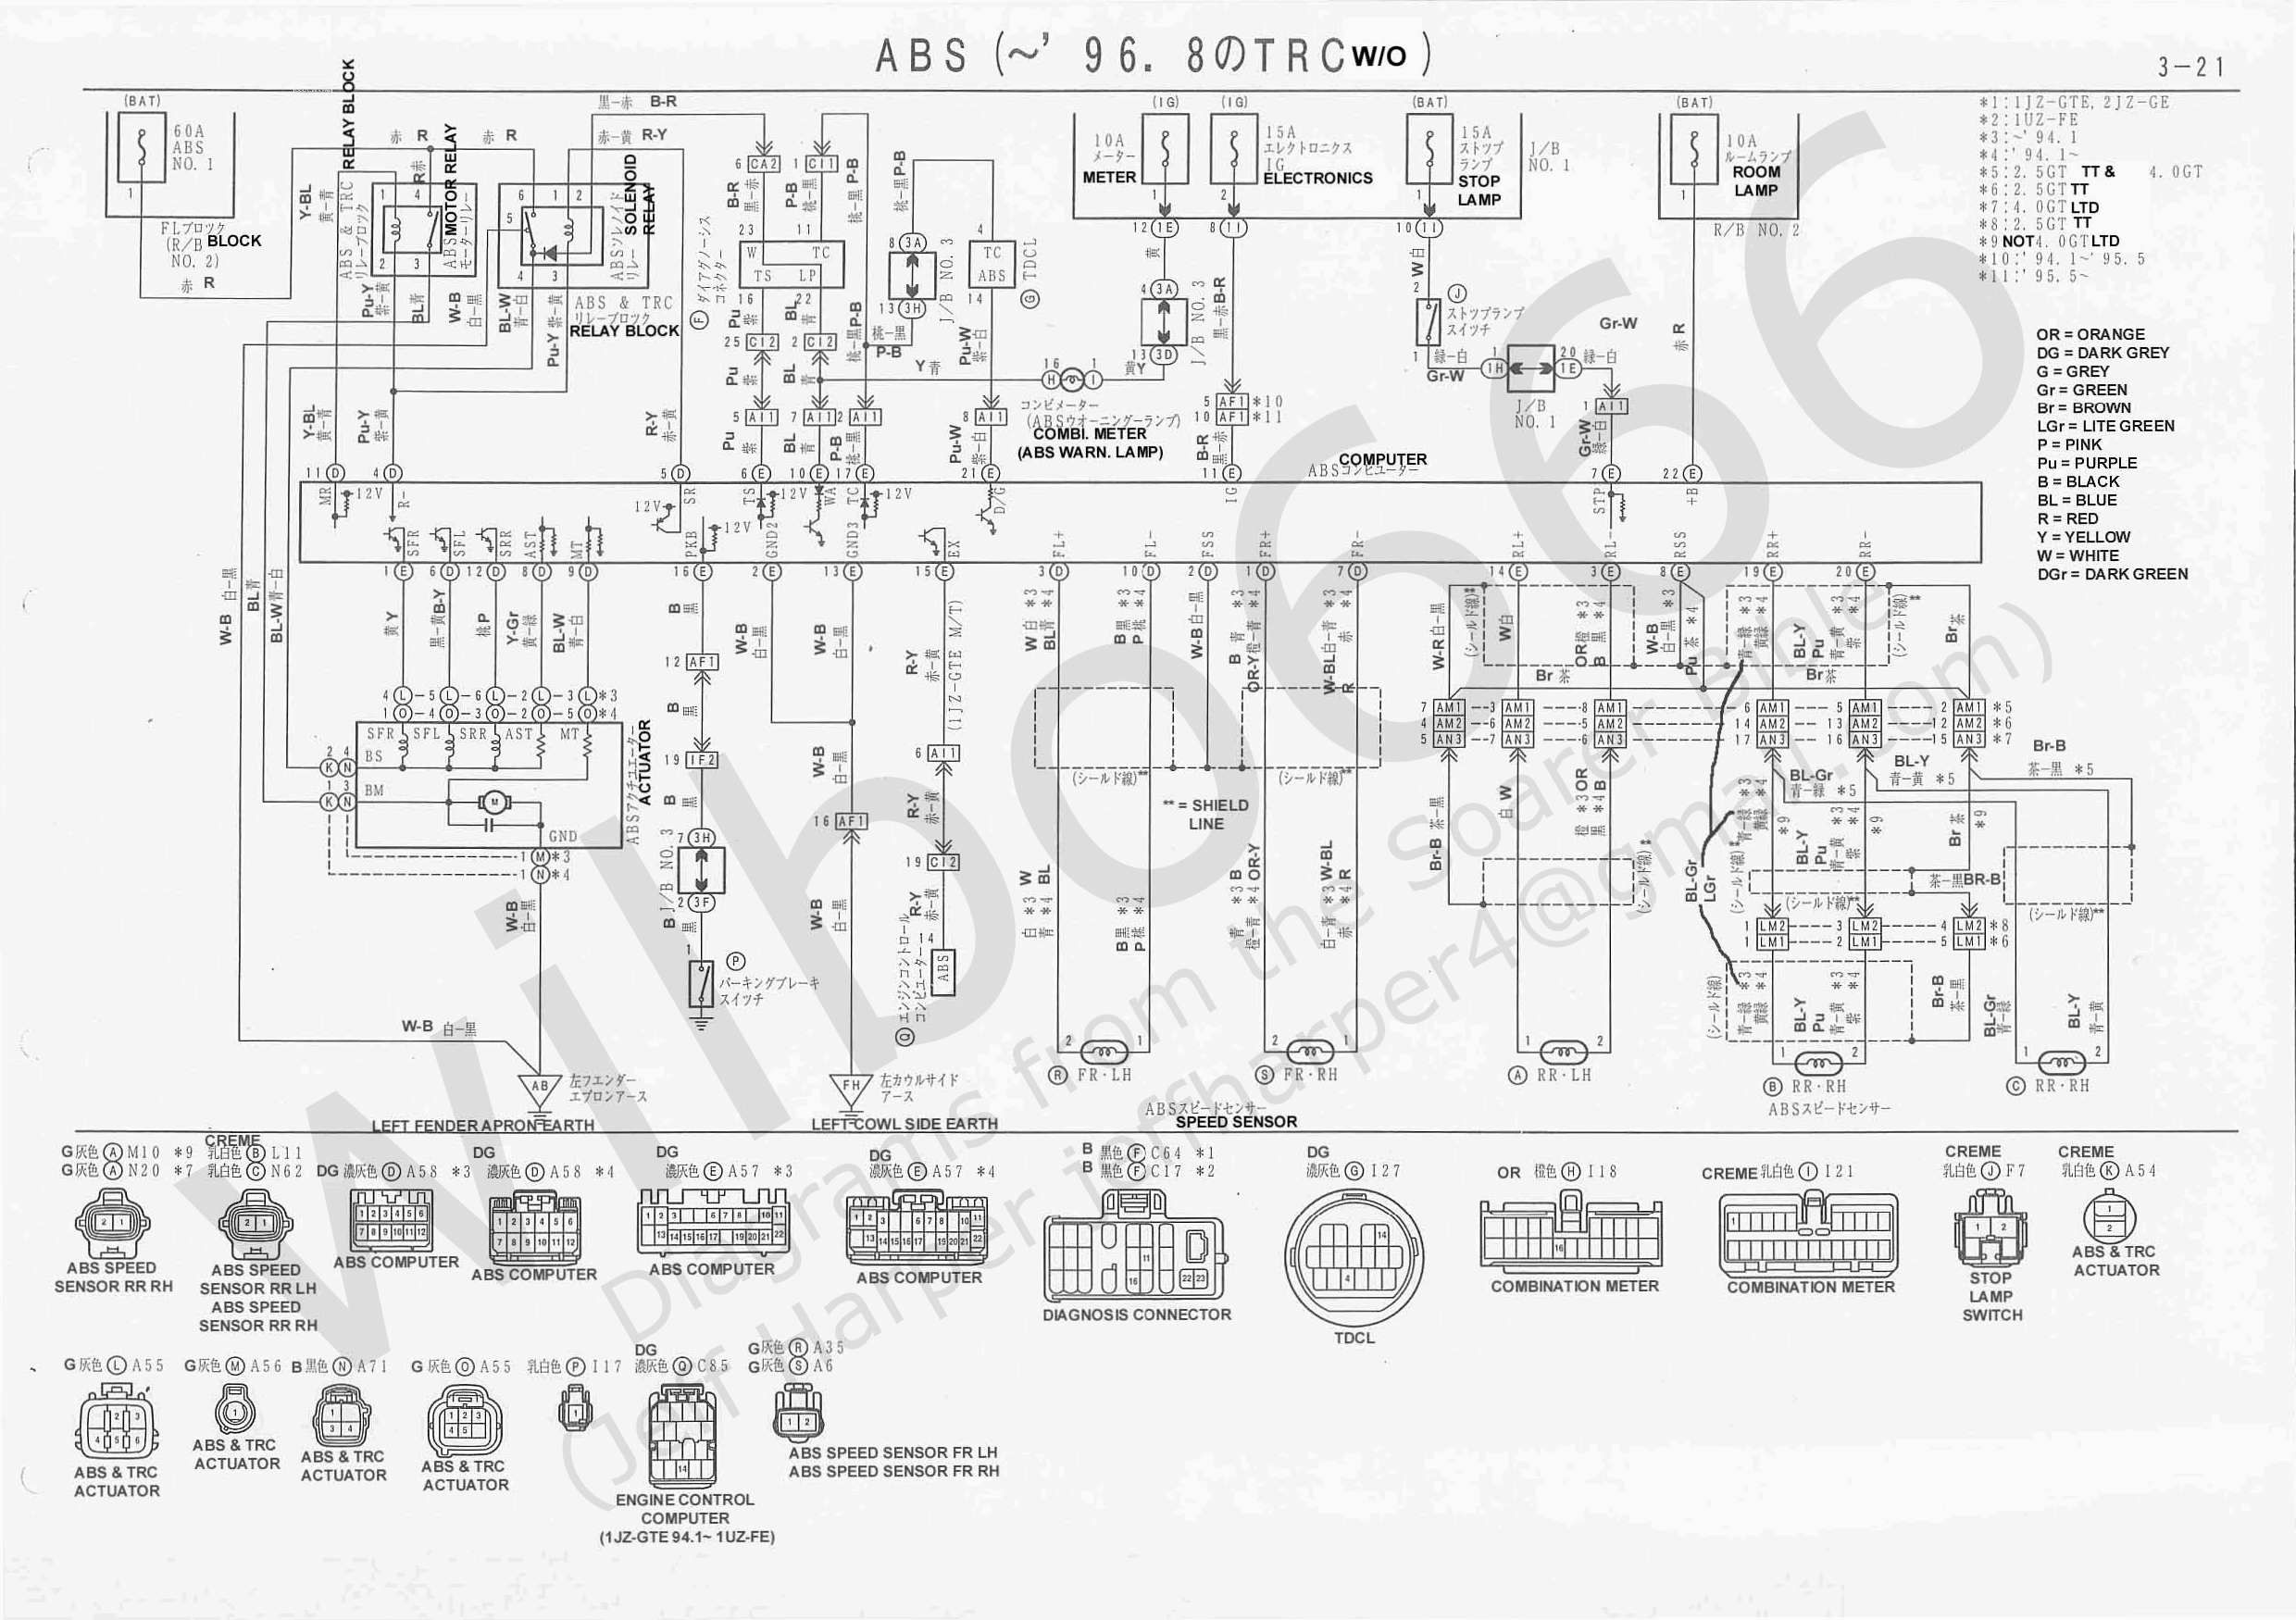 xZZ3x Electrical Wiring Diagram 6737105 3 21 wilbo666 [licensed for non commercial use only] mirror 1jz gte 1jz wiring diagram at soozxer.org